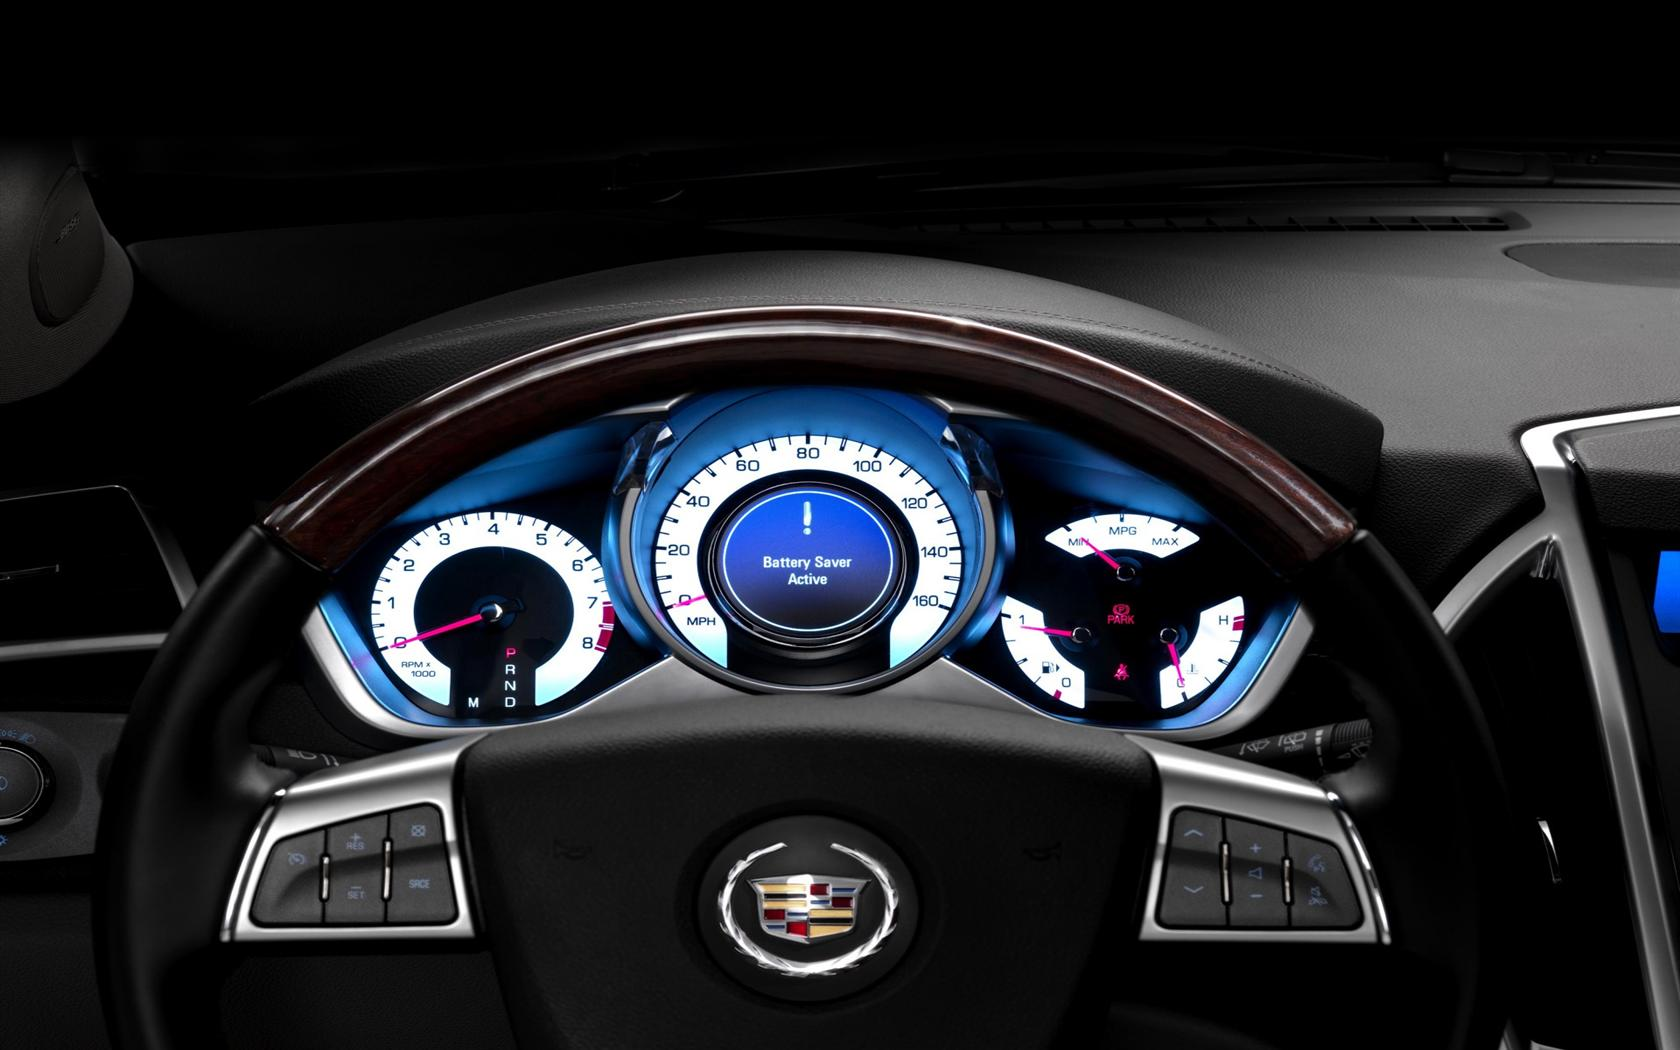 wallpapers view black images color photos in keywords side download cadillac hd srx